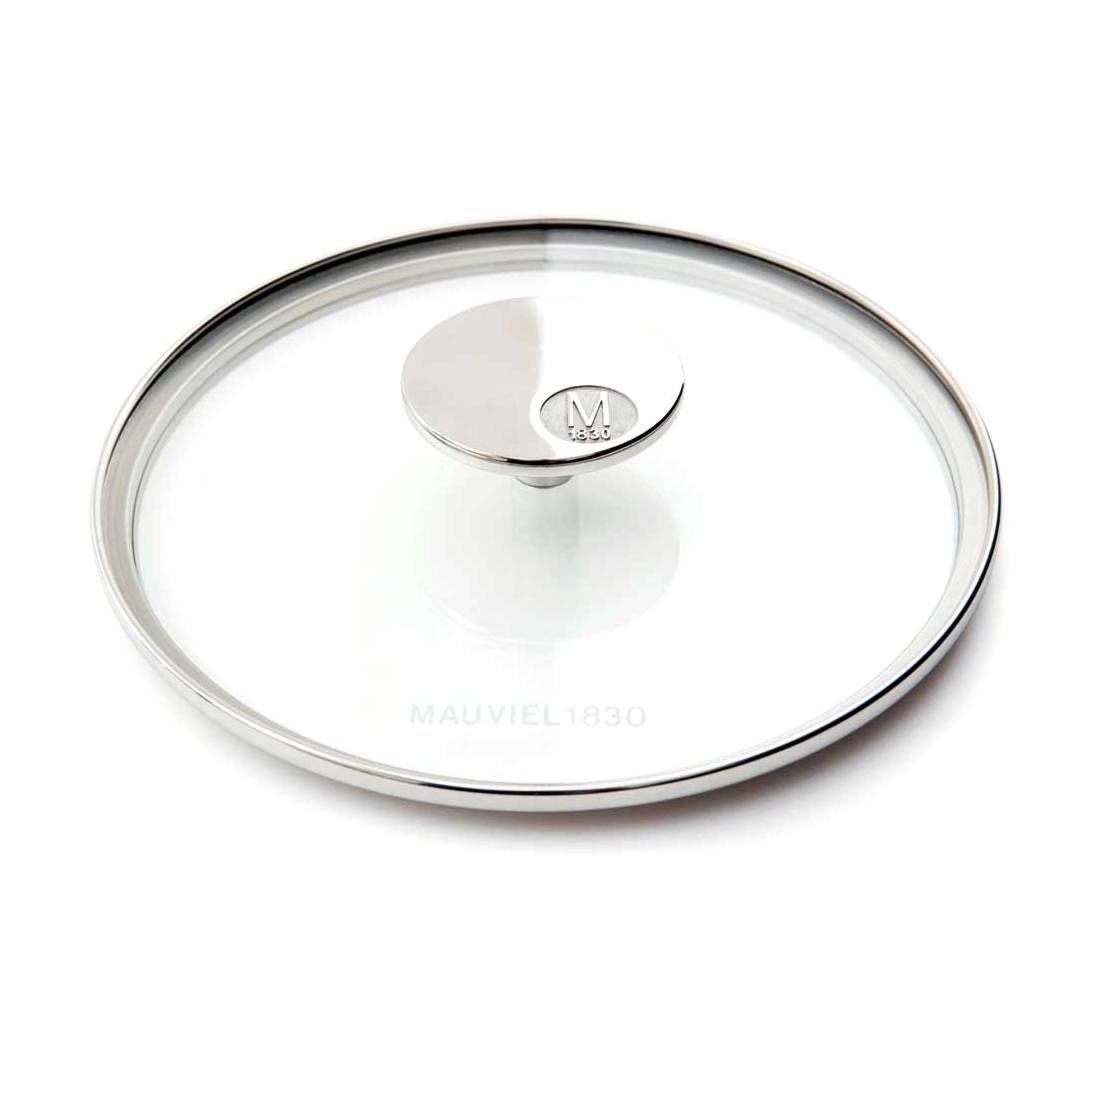 Mauviel M'cook Tempered Glass 11 Inch Lid with Stainless Steel Knob Handle